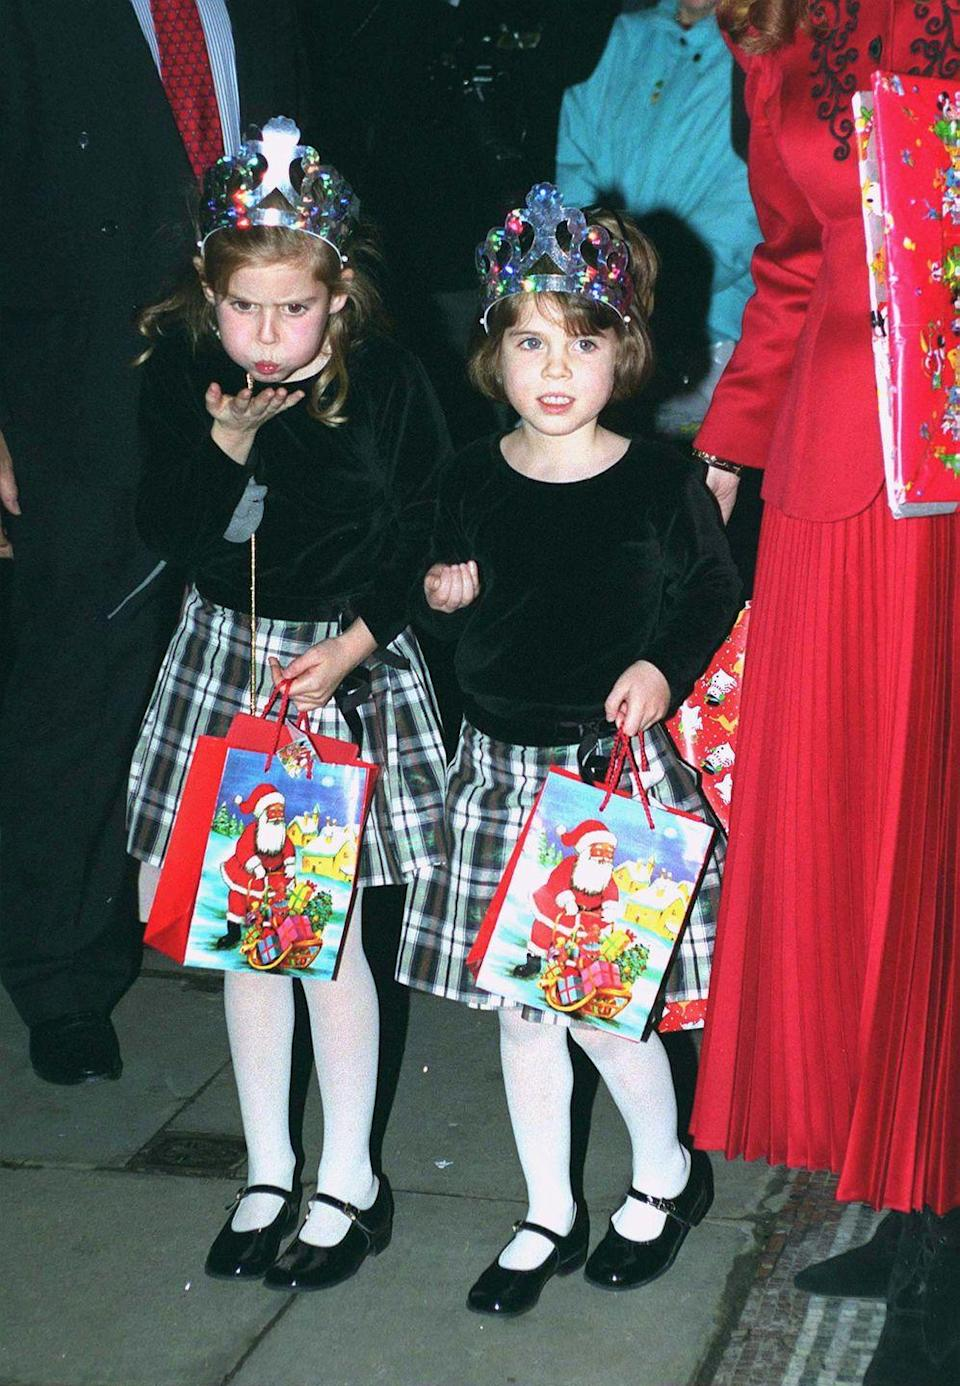 <p>Princess Beatrice and Princess Eugenie attend a Christmas performance of <em>Cinderella.</em></p>